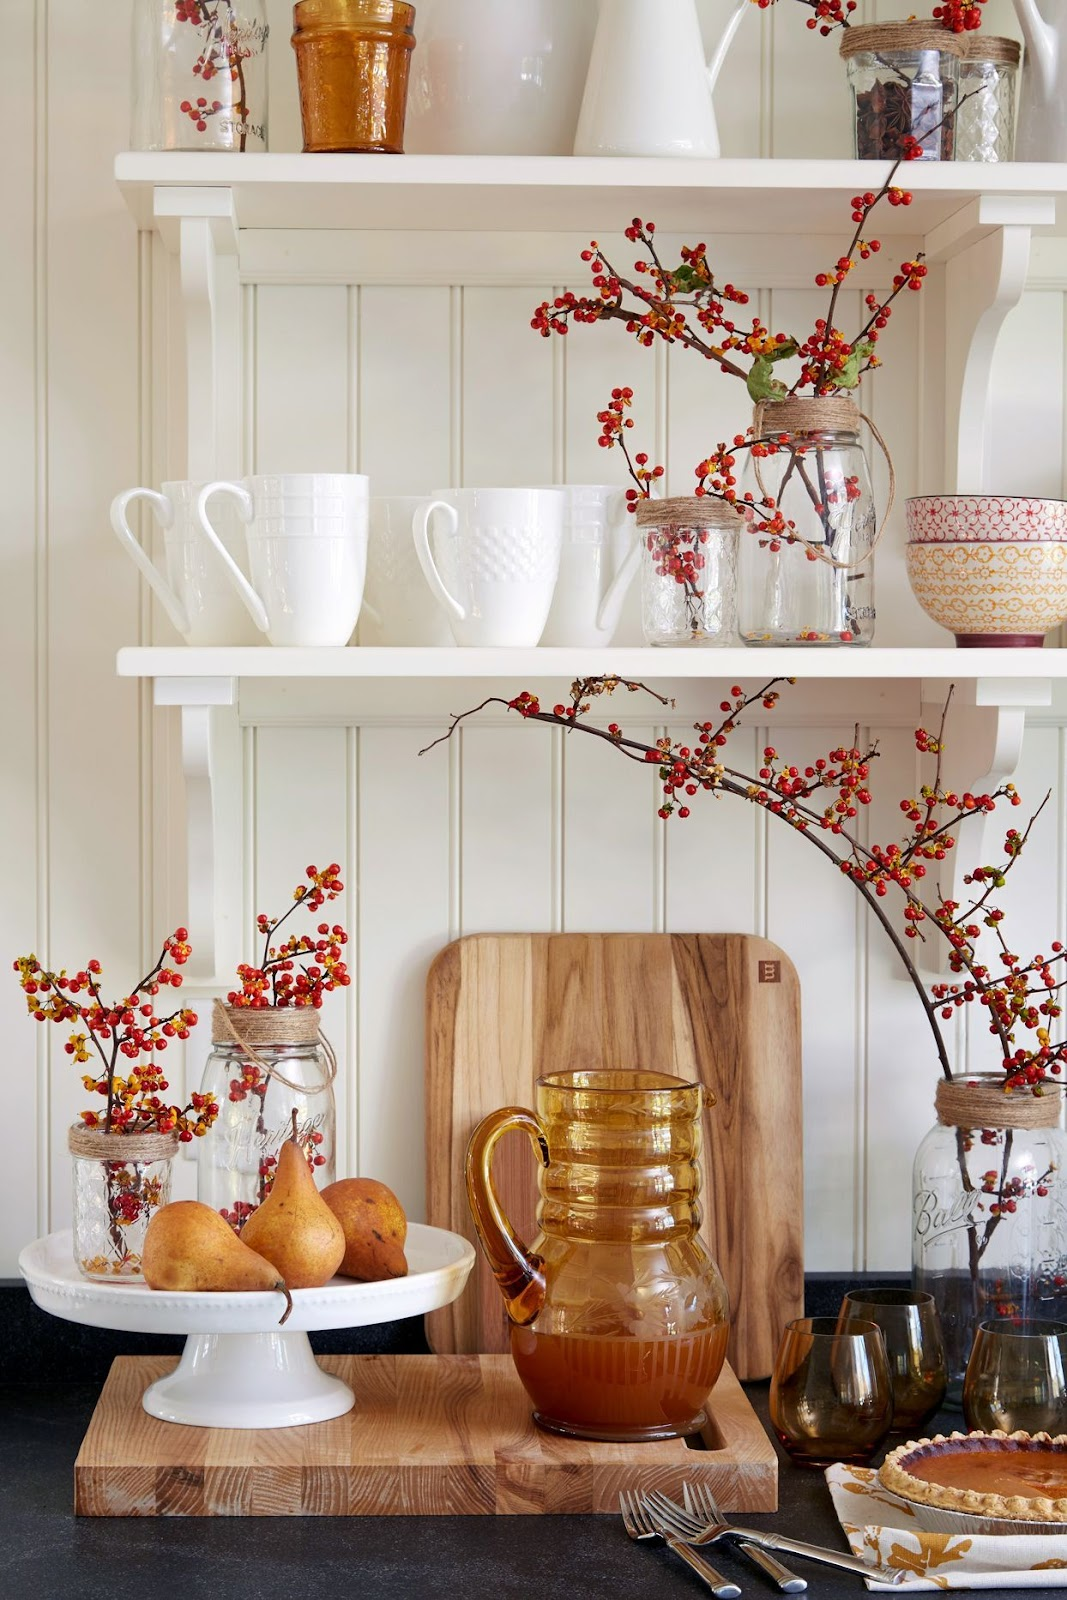 kitchen counter with fall decorations and berries.